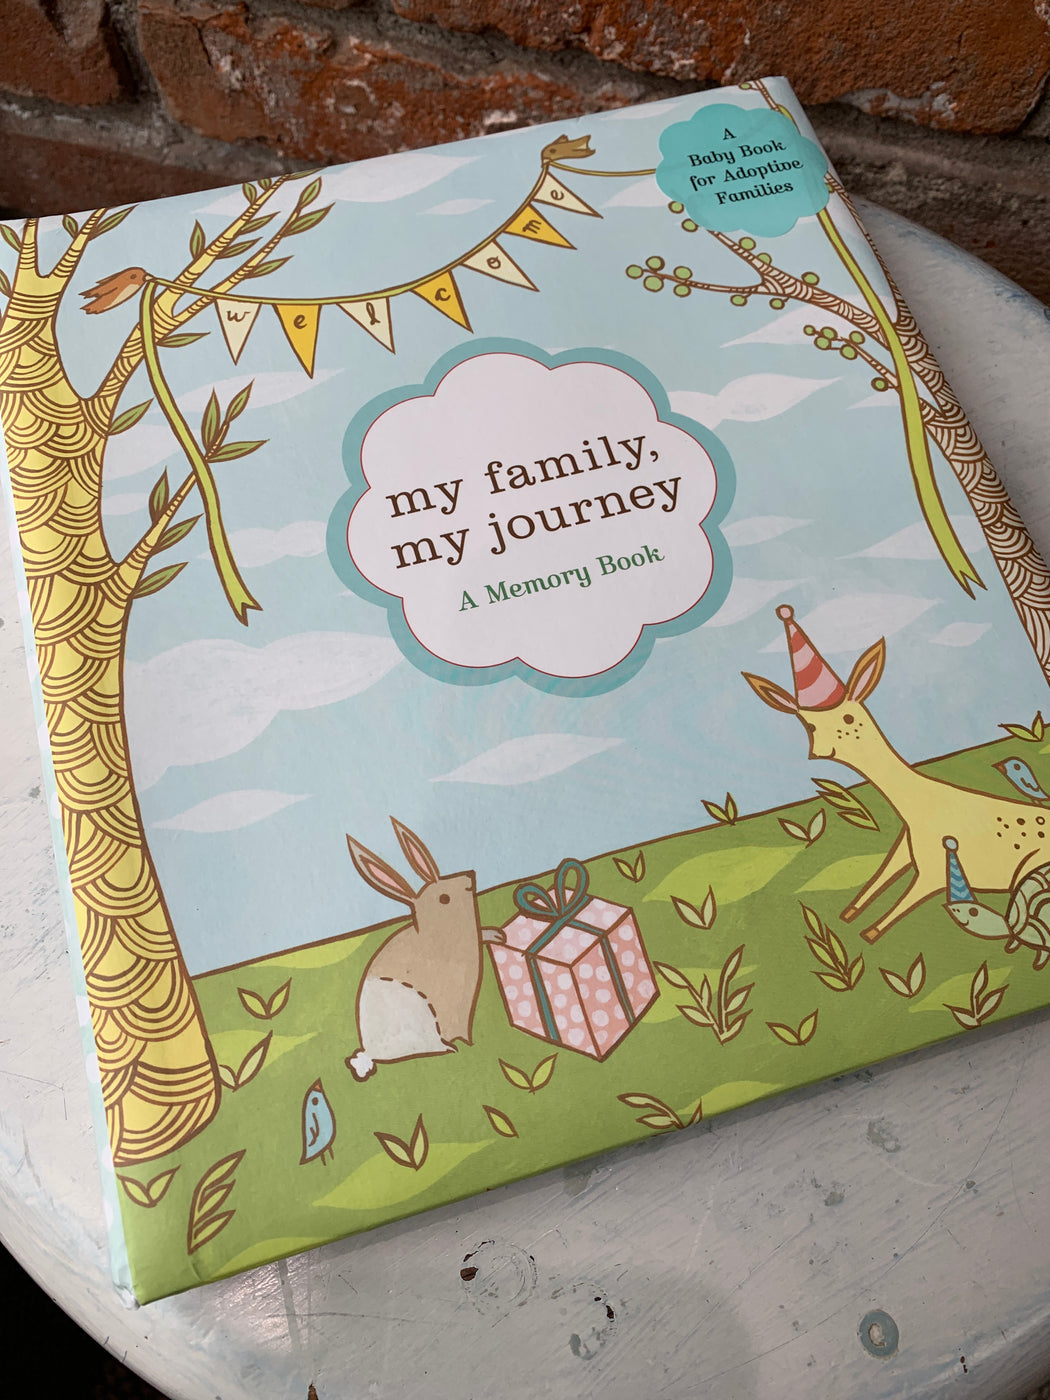 Chronicle Books is proud to offer a baby book that suits the wide array of experiences and choices that bring a family and their new child together. This lovely keepsake album contains sections to record all the joyful milestones and cherished family moments that mark a new baby's life, pages to chart the adopted child's unique journey, as well as a sturdy pocket in which to store important documents and memorabilia. Inside the pocket are over 60 stickers you can use to customize the family tree pages. As t